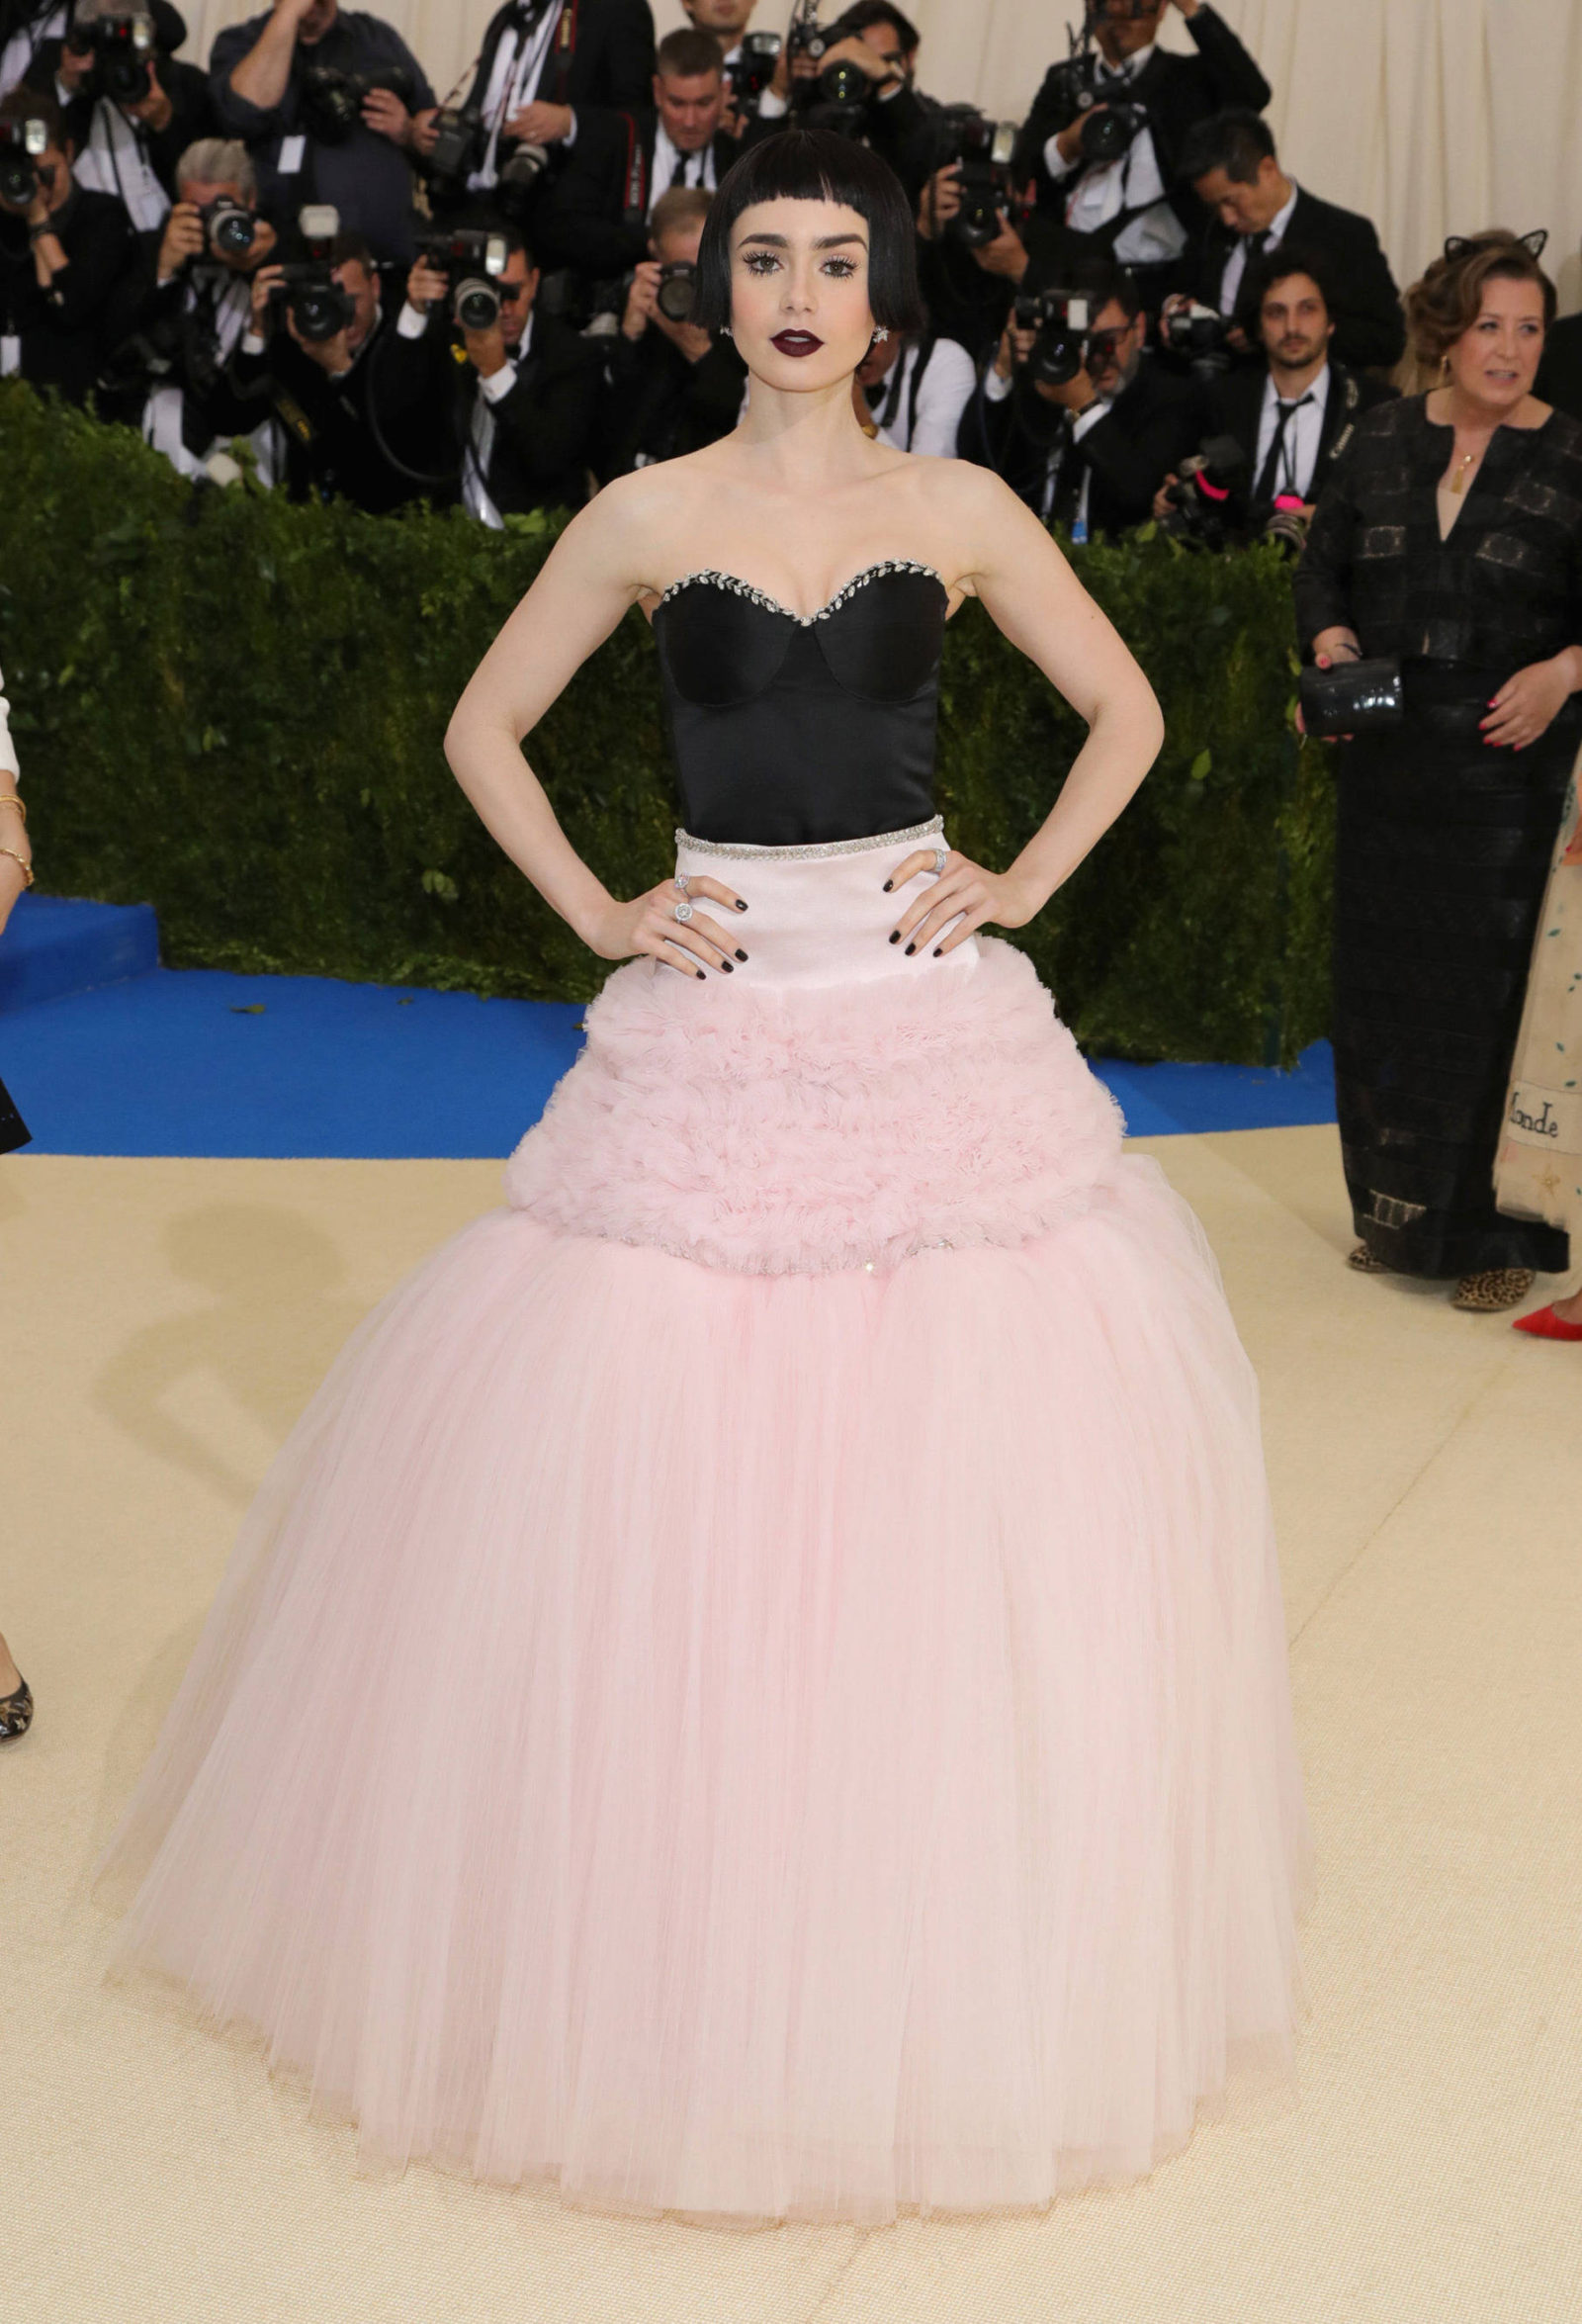 f0d5c630b16 (http   nymag.com thecut 2017 05 met-gala-2017-see-all-the-looks-from-the- red-carpet slideshow 2017 05 01 all the looks fromthemetgala2017redcarpet   ...